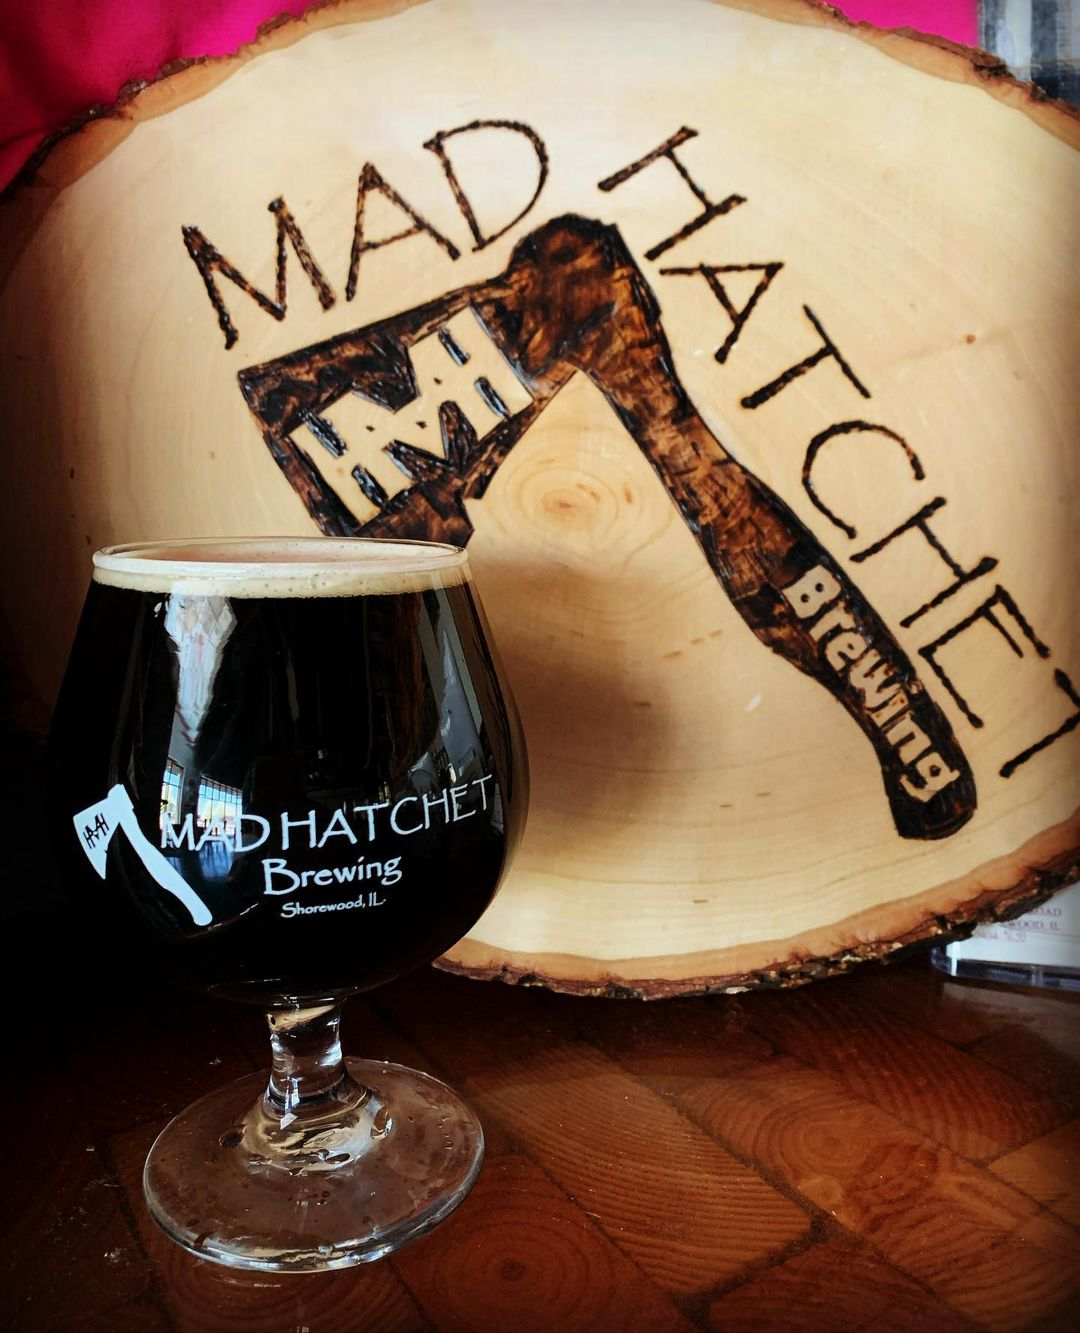 Glass of Mad Hatchet's Cinnister Stout